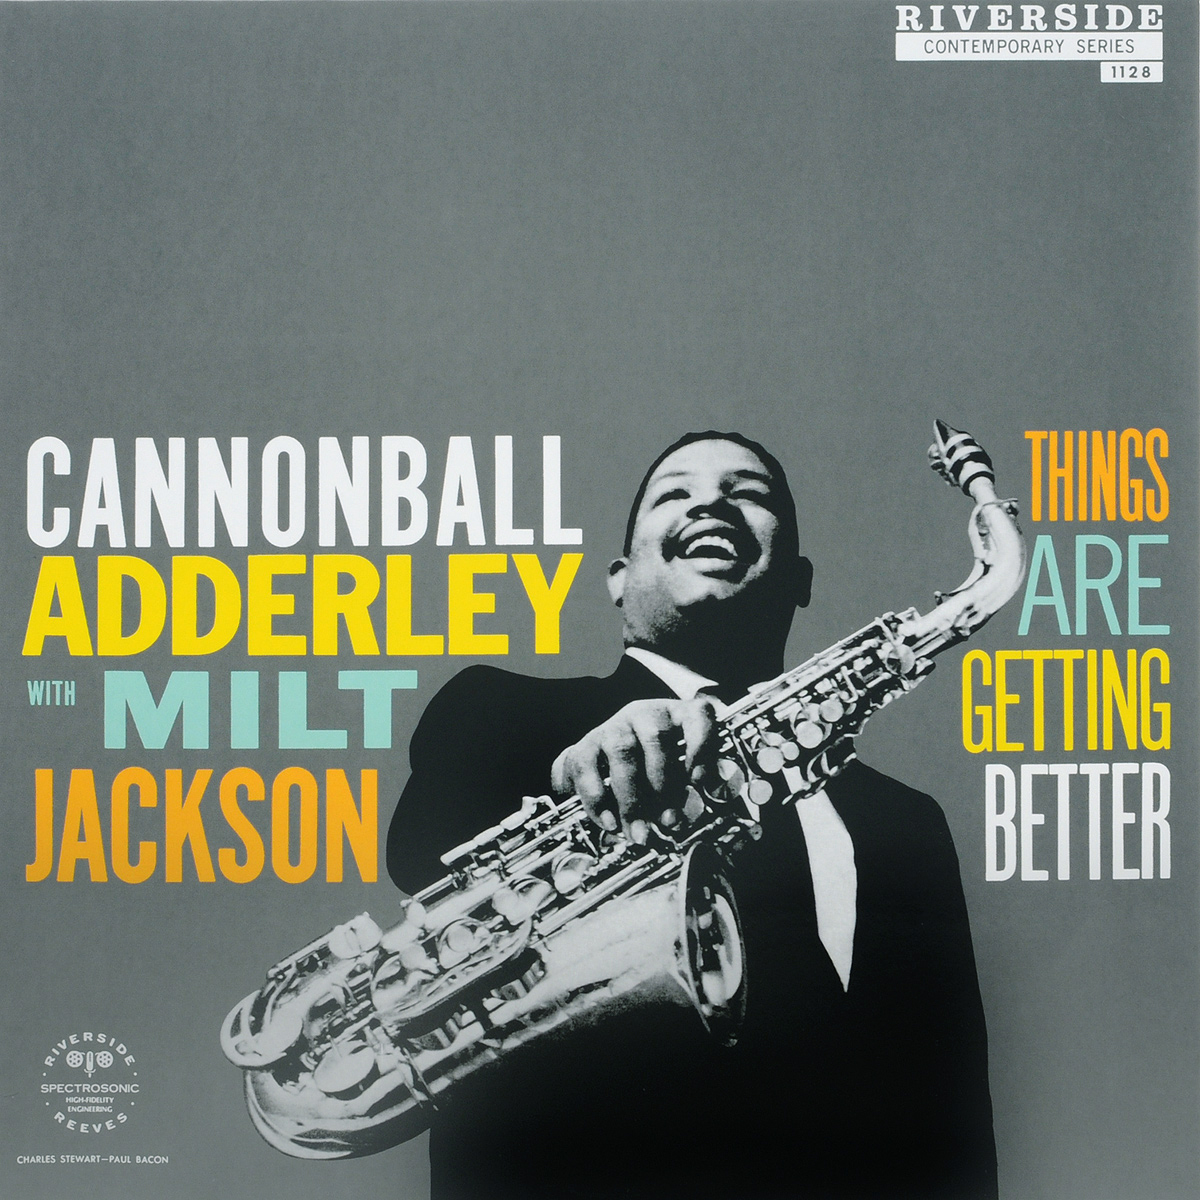 Кэннонболл Эдерли,Милт Джексон Cannonball Adderley With Milt Jackson. Things Are Getting Better (LP) майлз дэвис милт джексон miles davis and milt jackson quitet sextet page 5 page 2